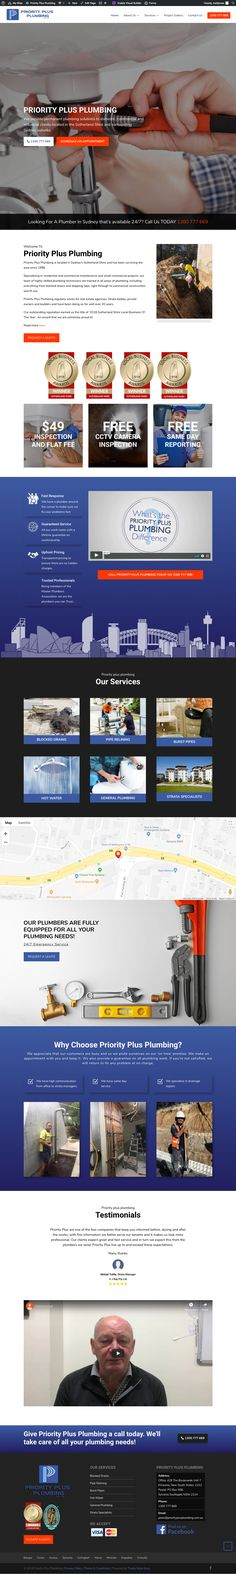 Priority Plus Plumbing offers world-class emergency plumbing services in Sydney that are affordable. Plumbing Emergency, Projects, Blue Prints, Tile Projects